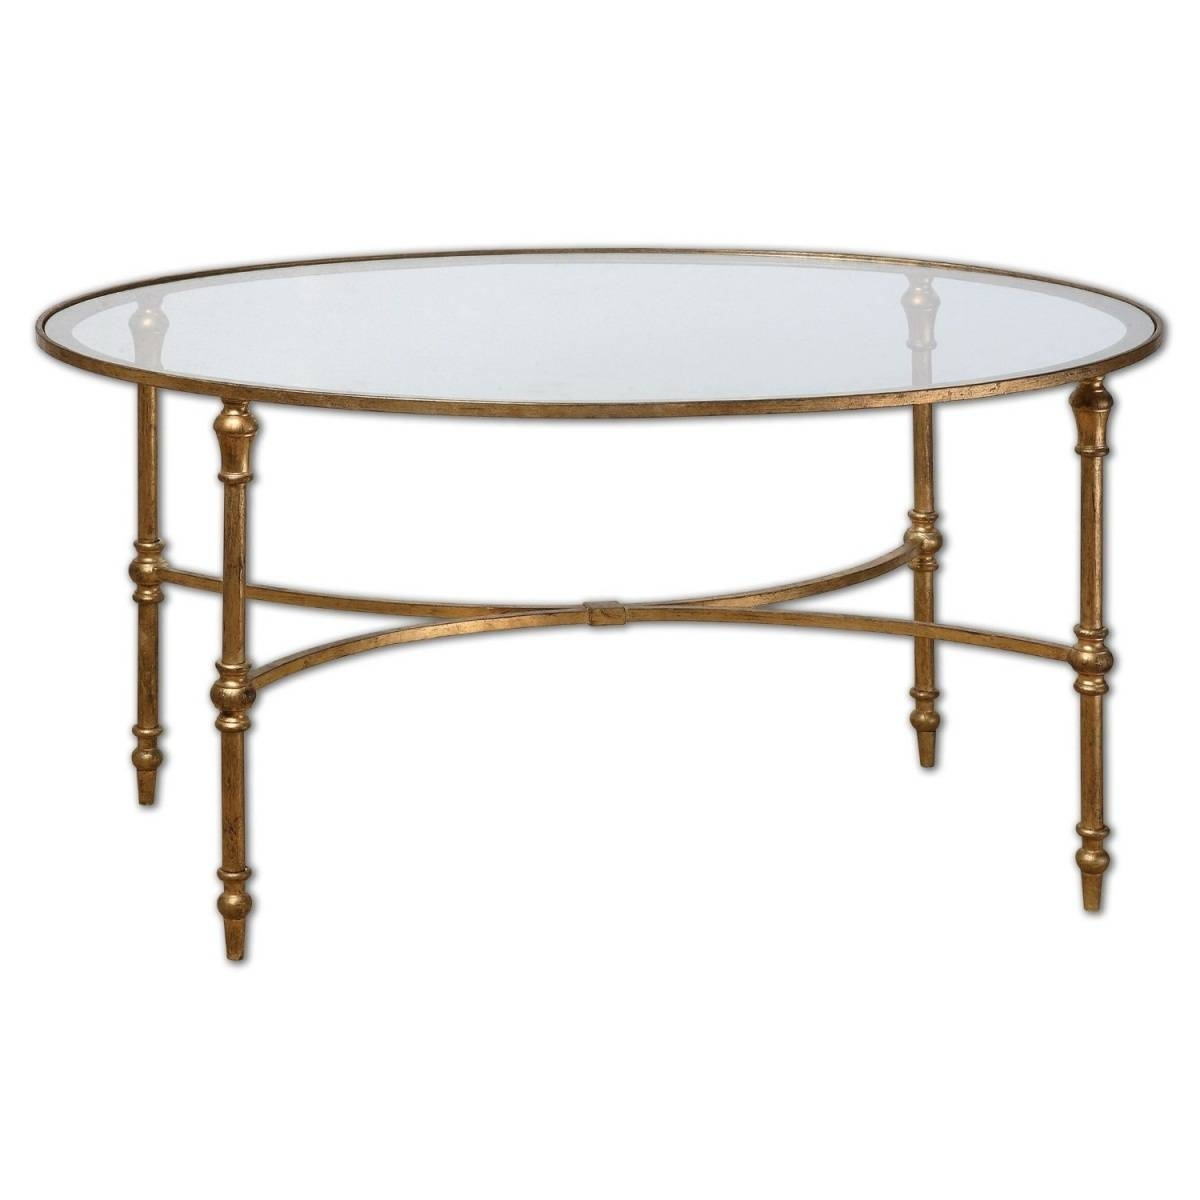 Images Of Round Glass Top Coffee Tables | Coffee Tables Decoration Within Coffee Tables Metal And Glass (View 24 of 30)